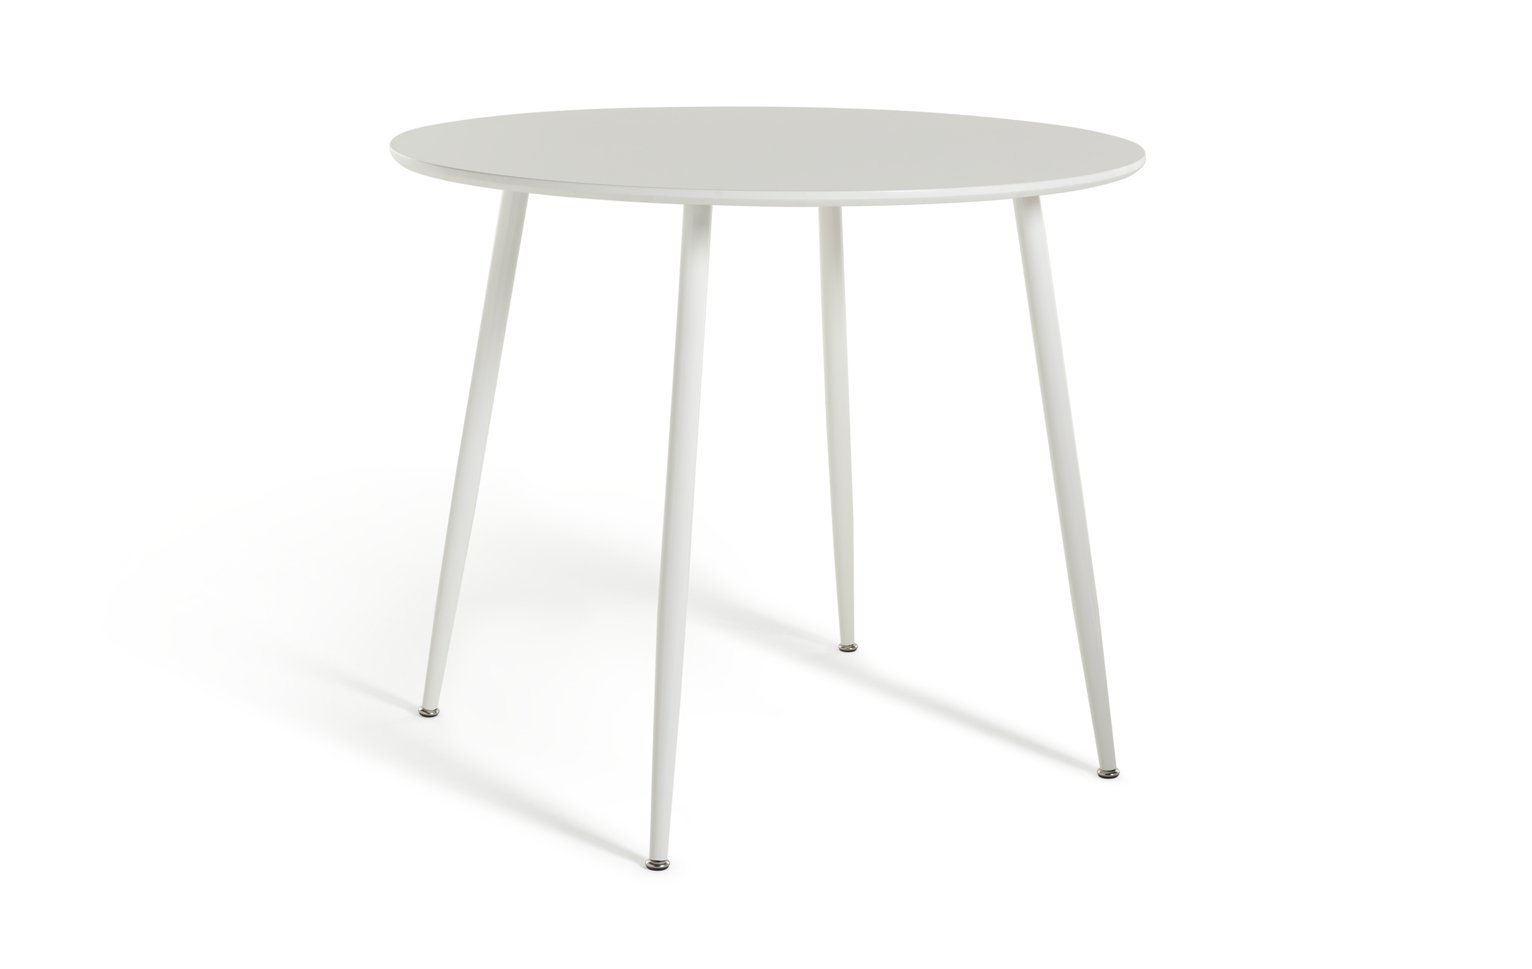 Habitat Beni Round 4 Seater Dining Table - White